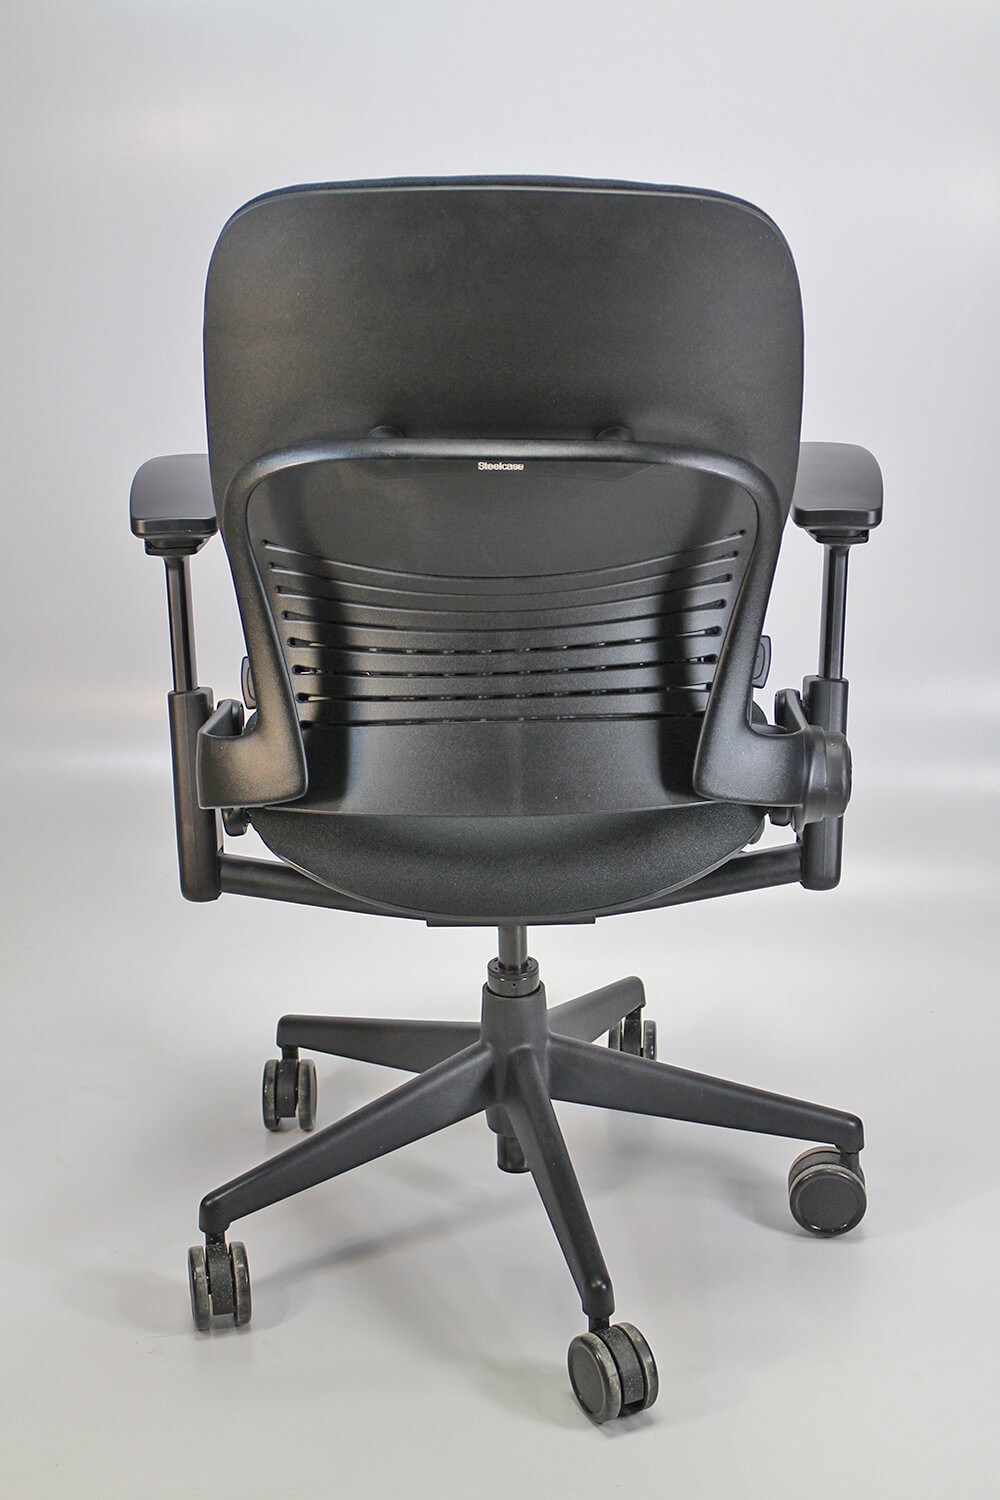 steelcase leap chair kd smart owner s manual version 2 remanufactured v2 back view